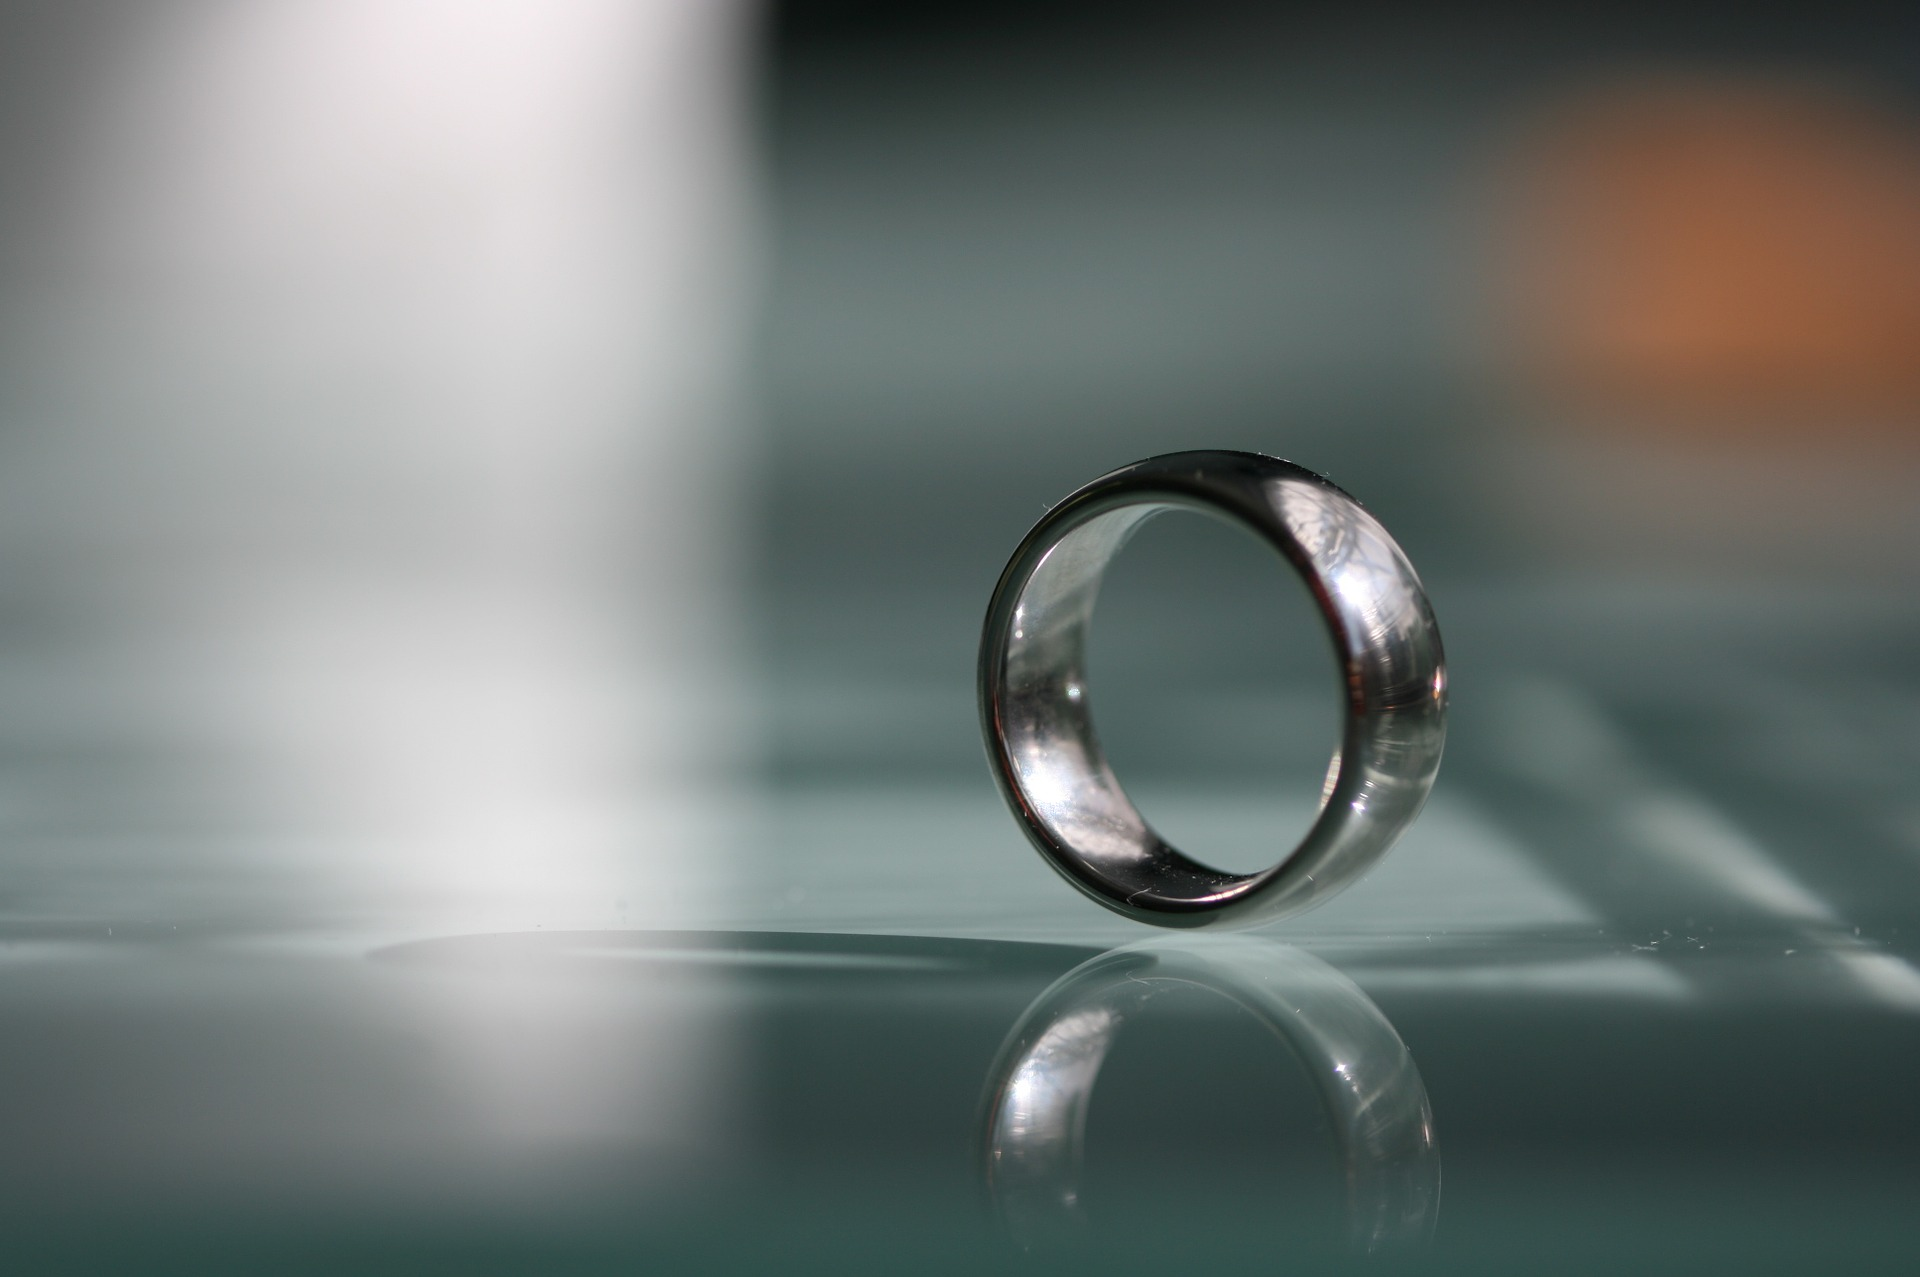 wedding-ring-2541888_1920.jpg